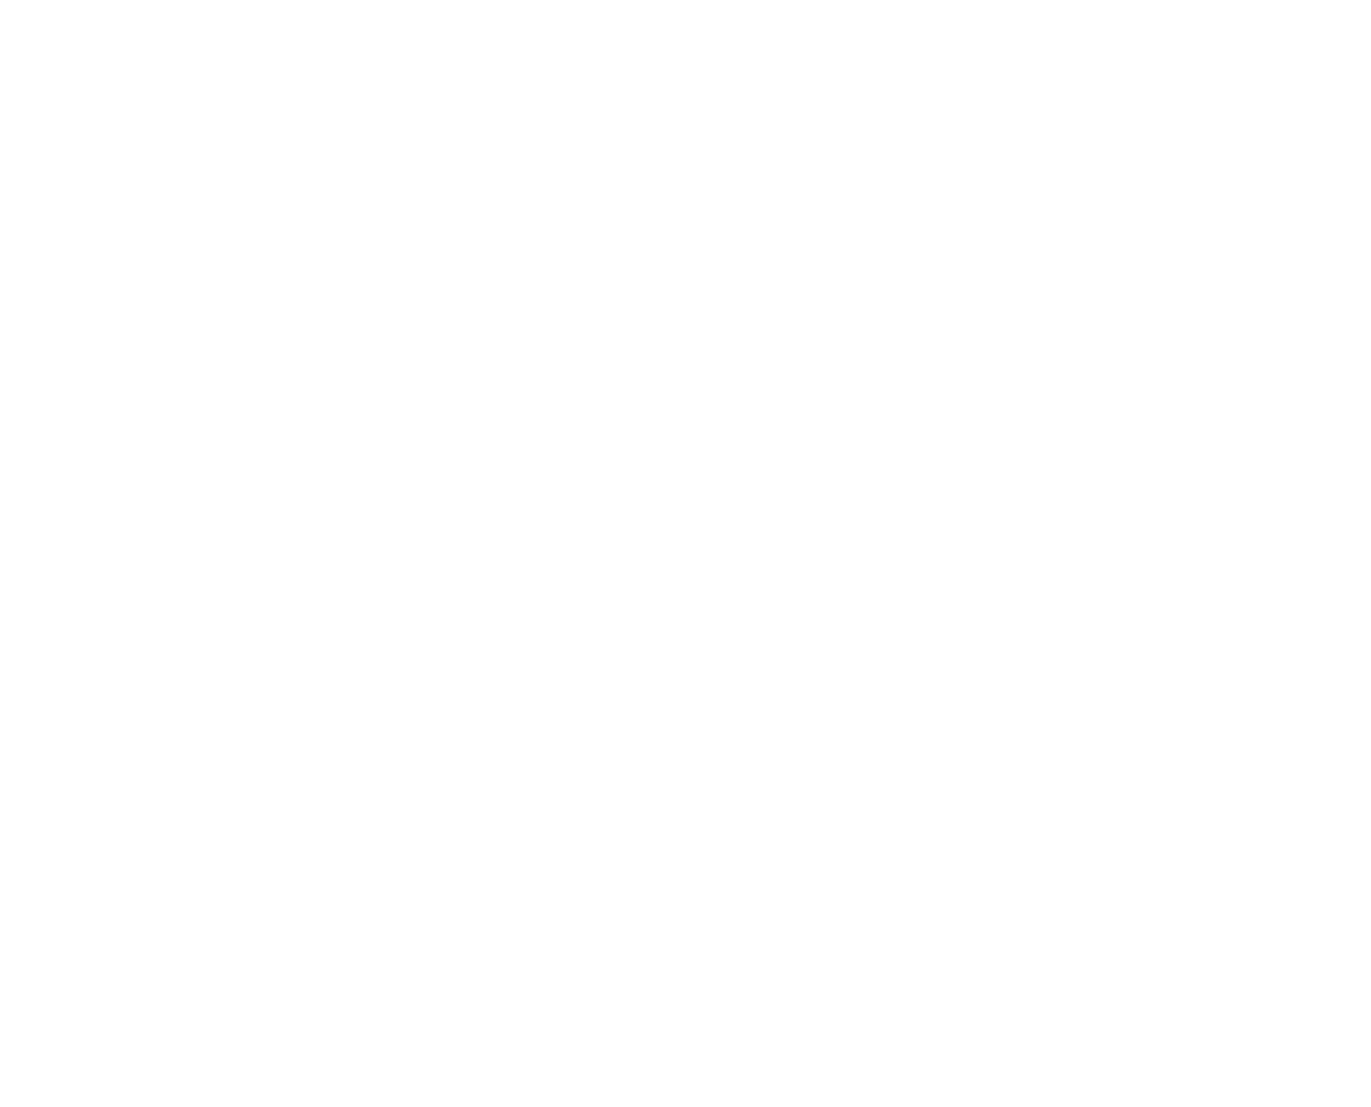 Estudio Juridico Aduanero